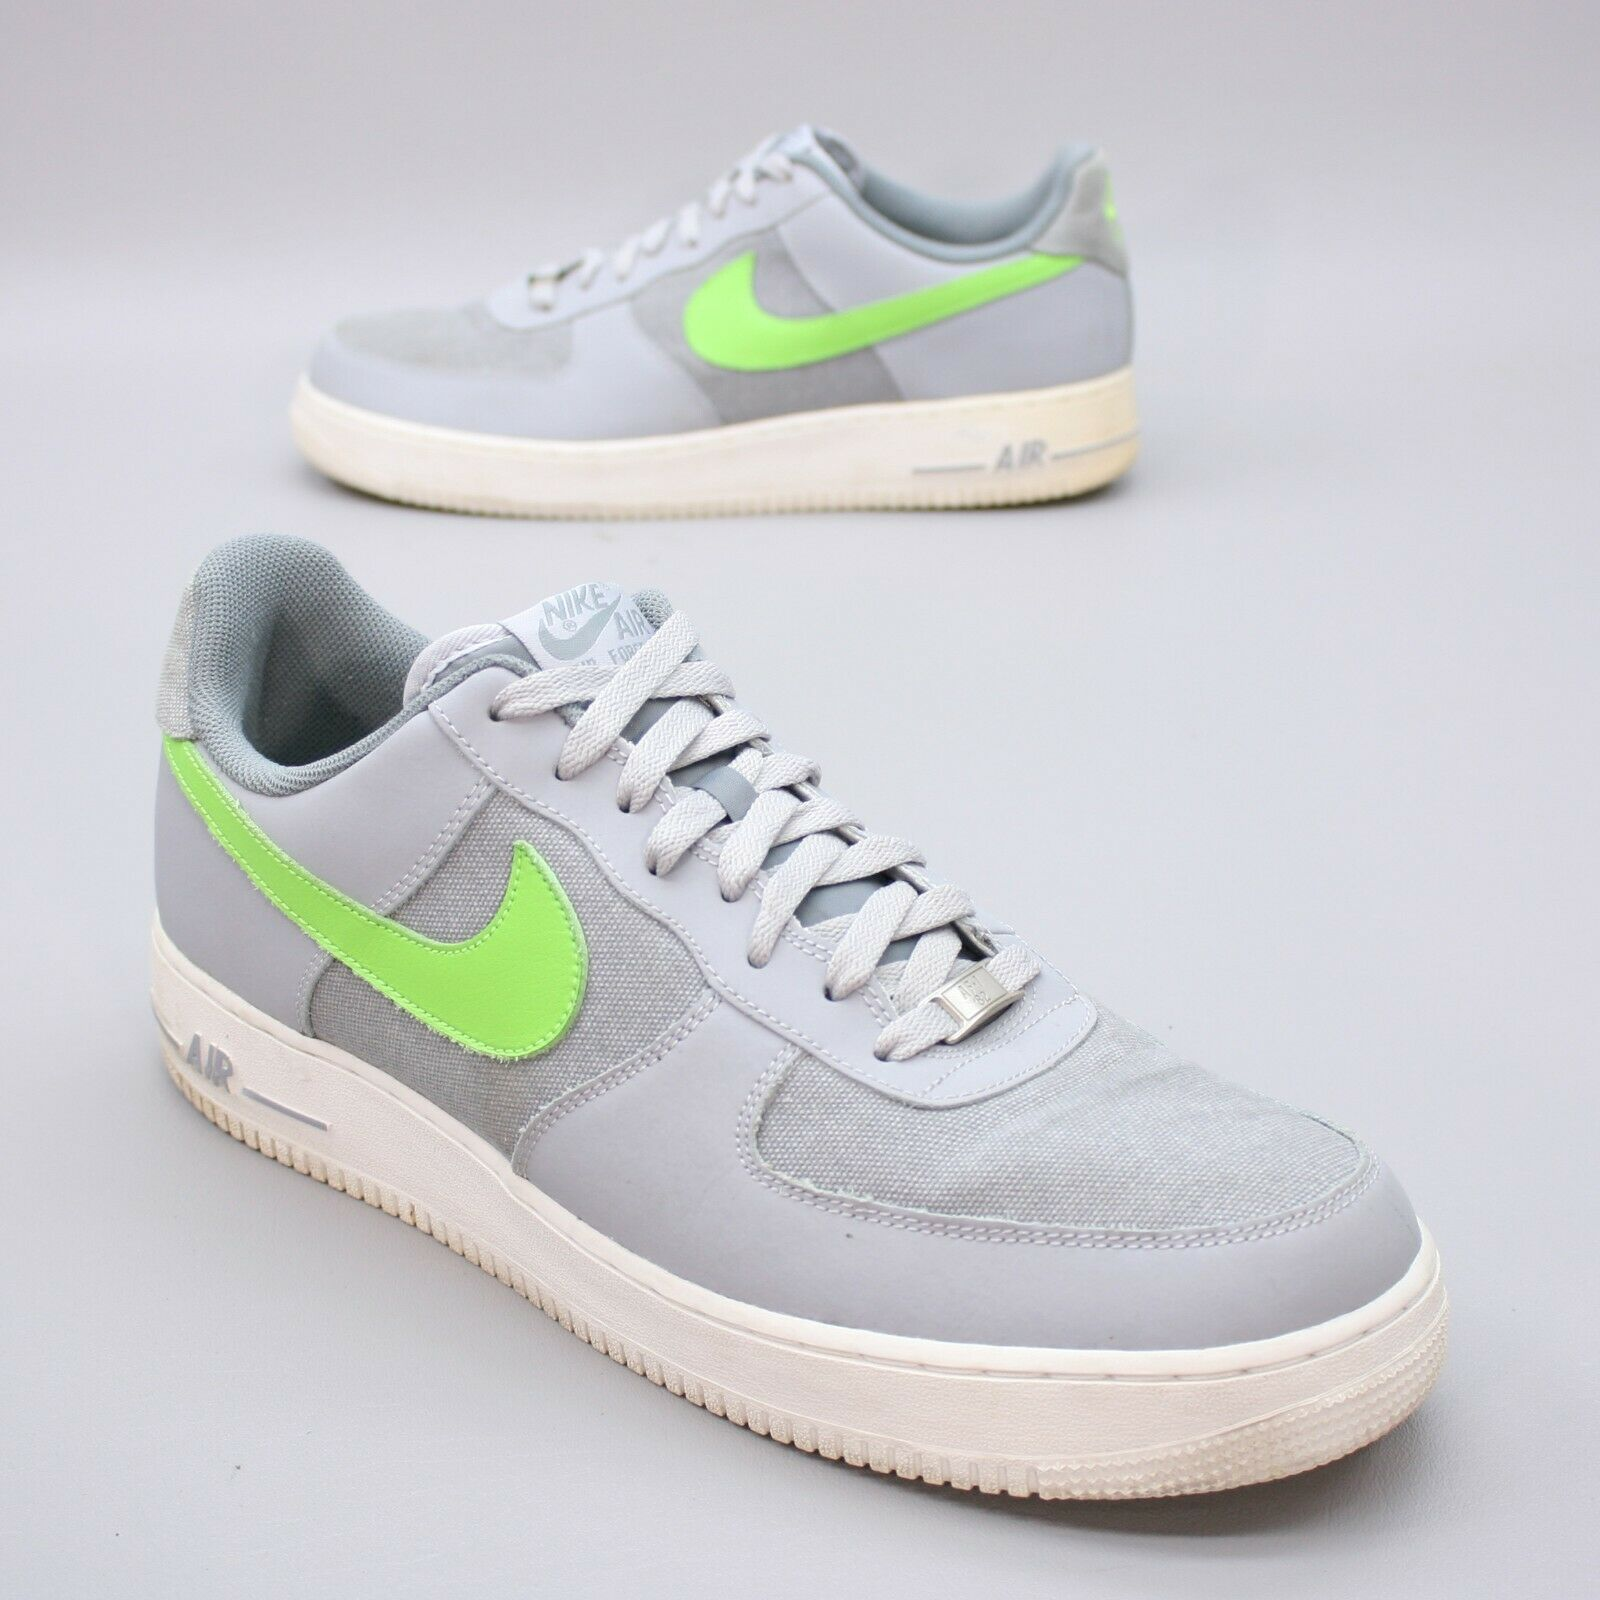 NIKE Men's 14 AIR FORCE 1 AF-1 Wolf Grey Low Basketball Sneakers - NO INSOLES